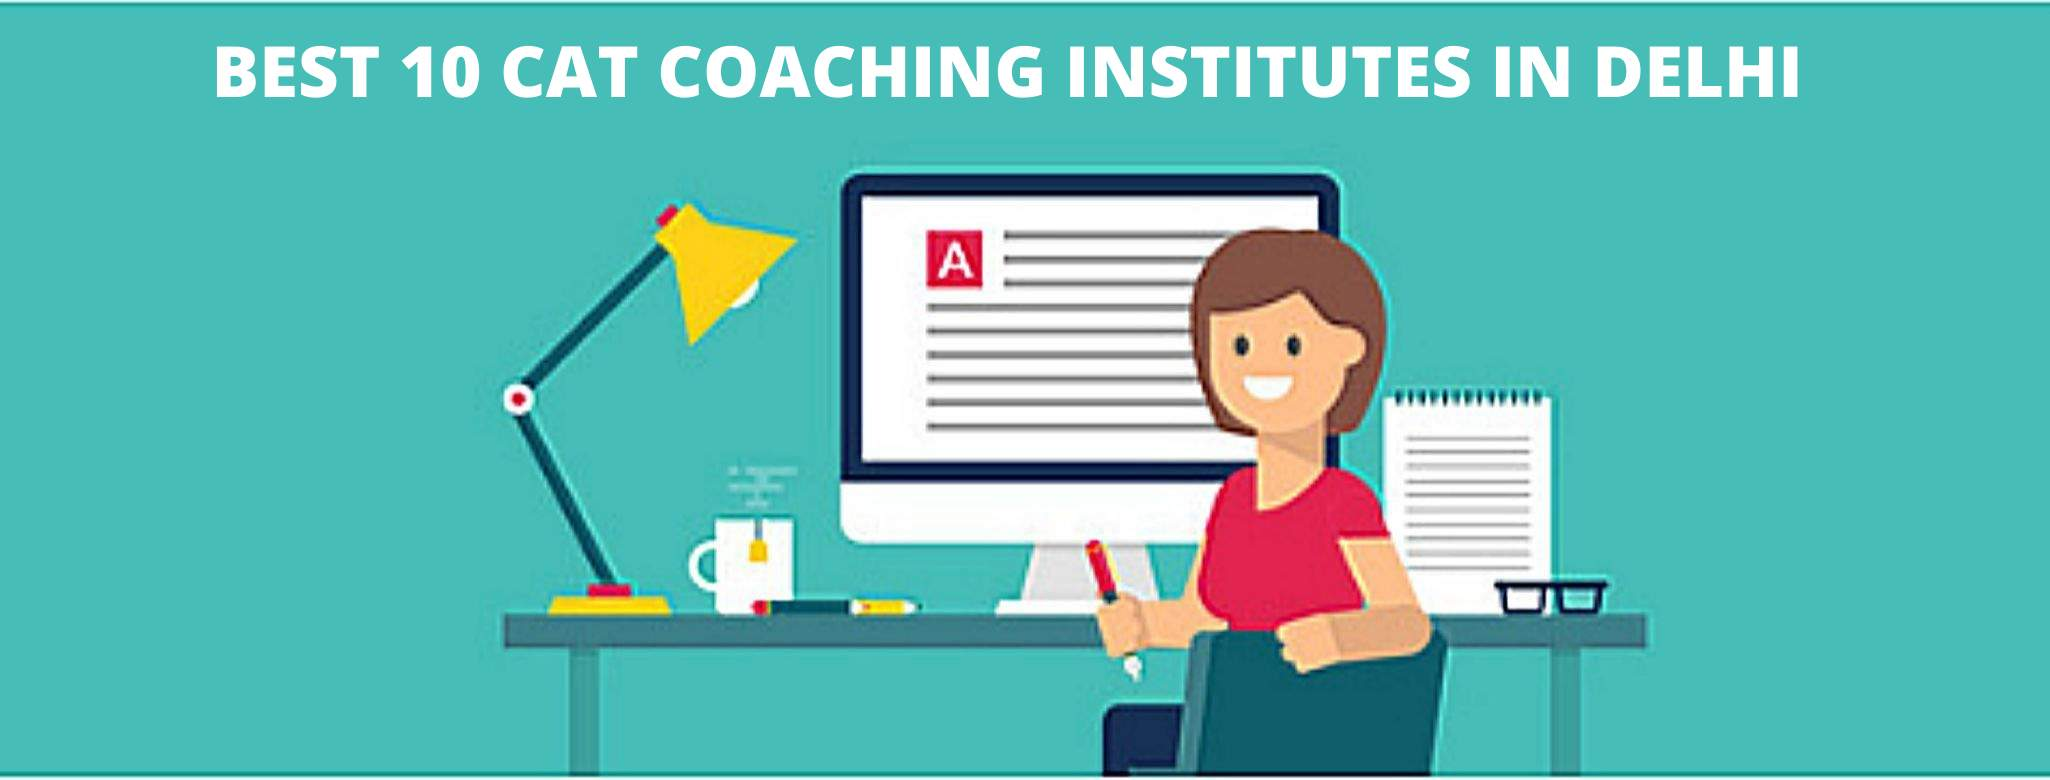 Best 10 Coaching Institutes In Delhi